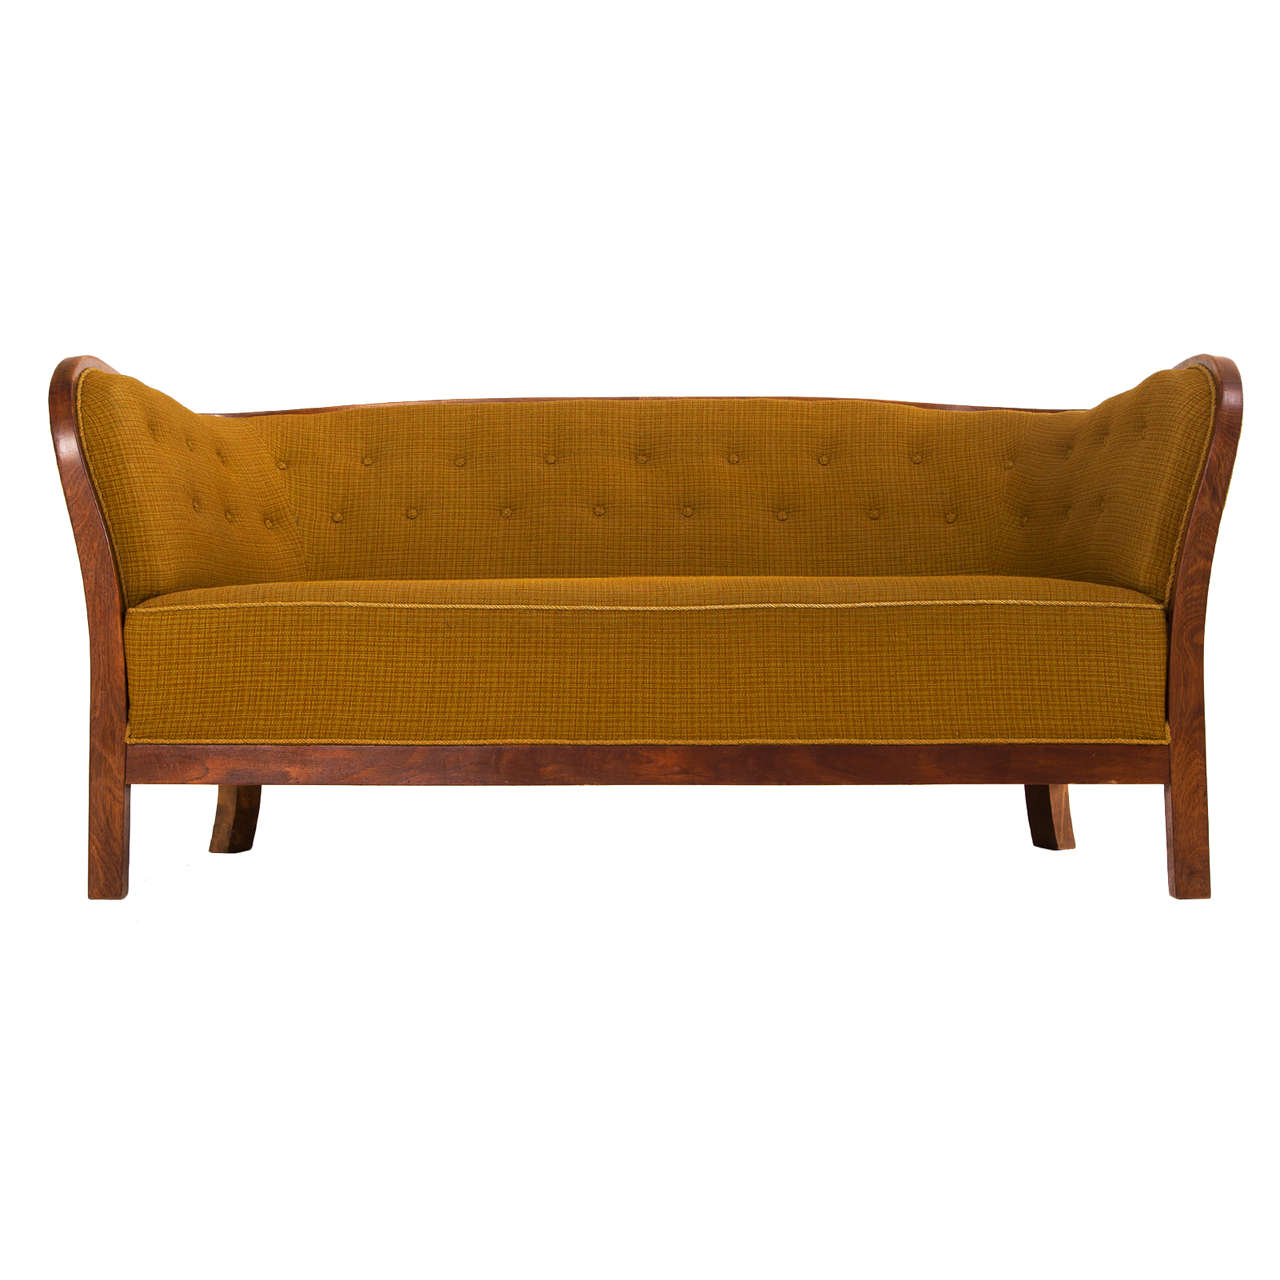 1940s danish art deco sofa at 1stdibs. Black Bedroom Furniture Sets. Home Design Ideas